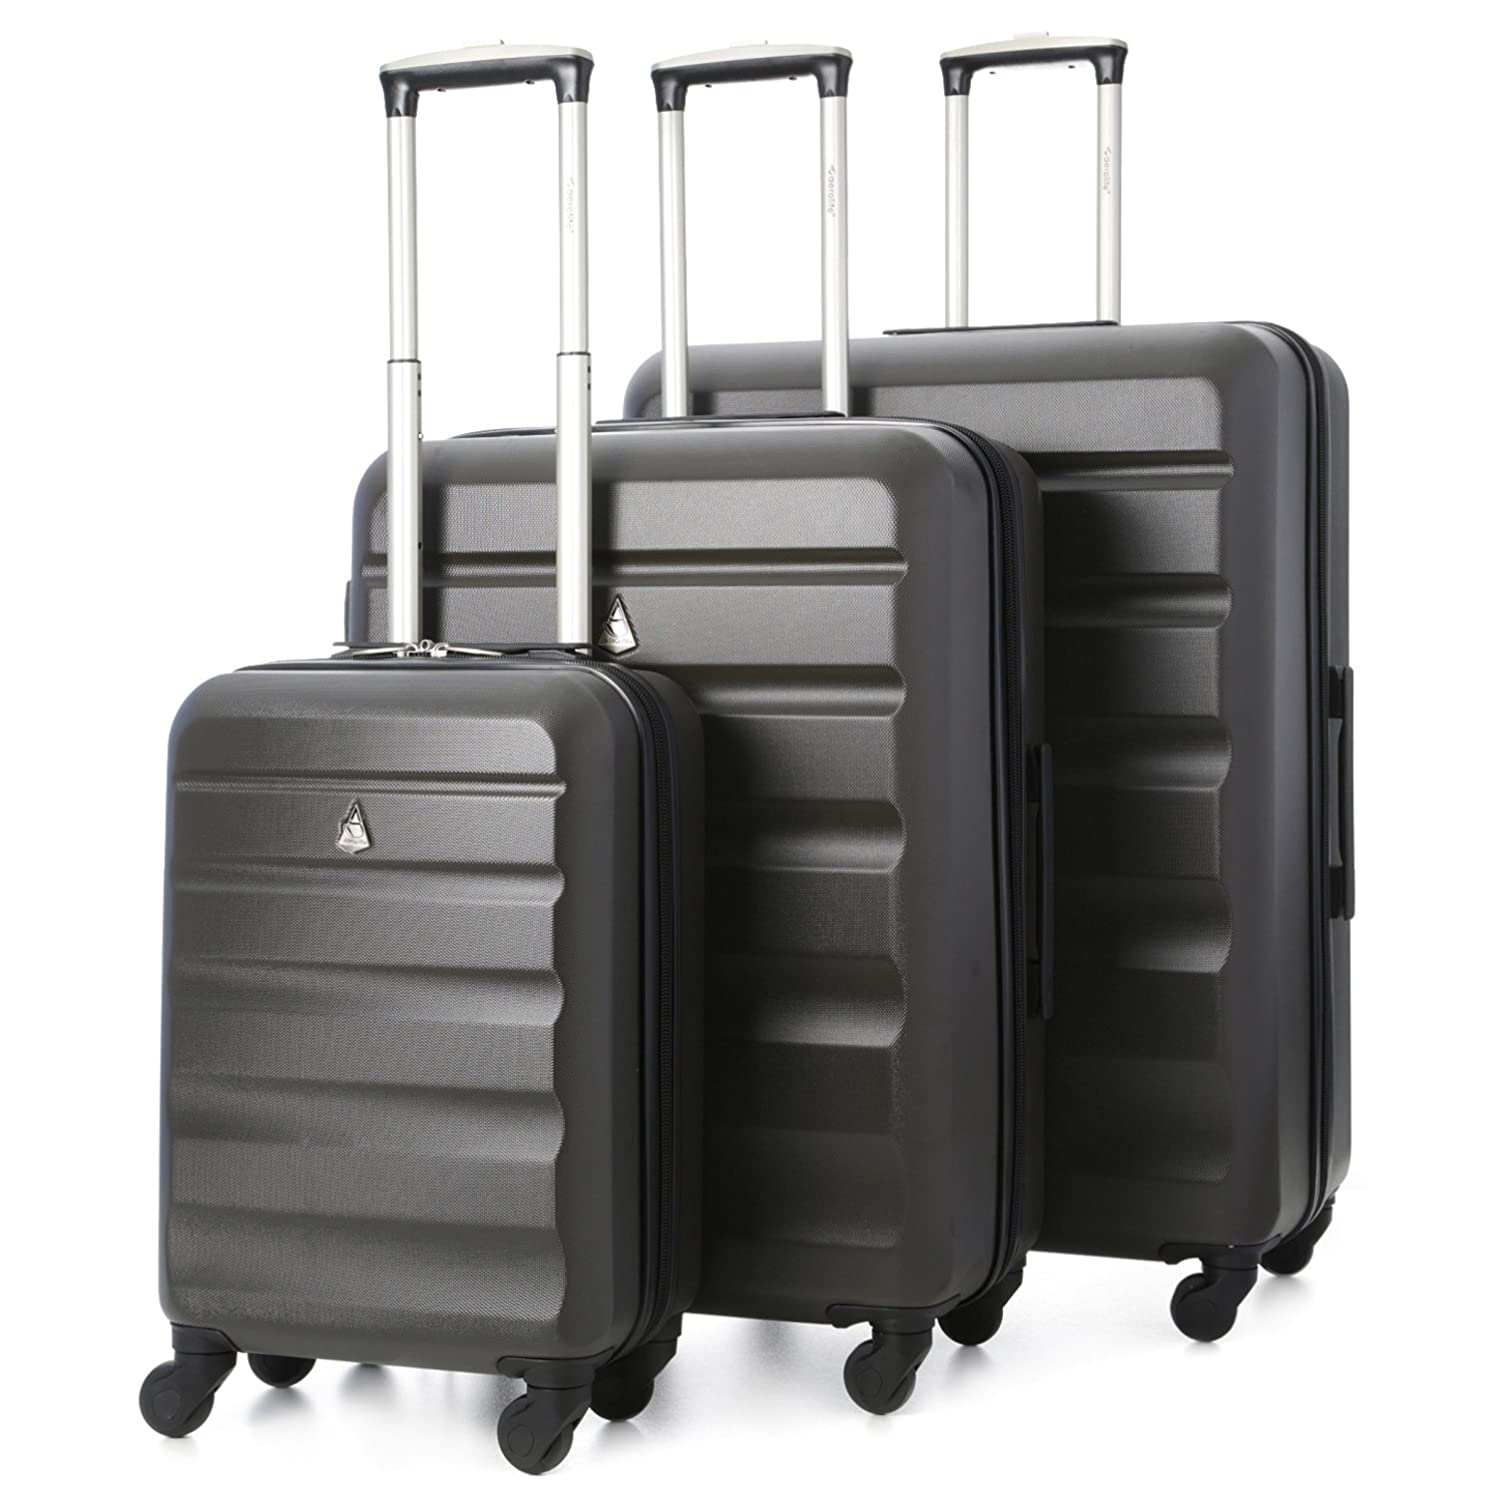 226871cc2185 Aerolite Lightweight 4 Wheel ABS Hard Shell Travel Trolley 3 Piece Lugagge  Suitcase Set, 21